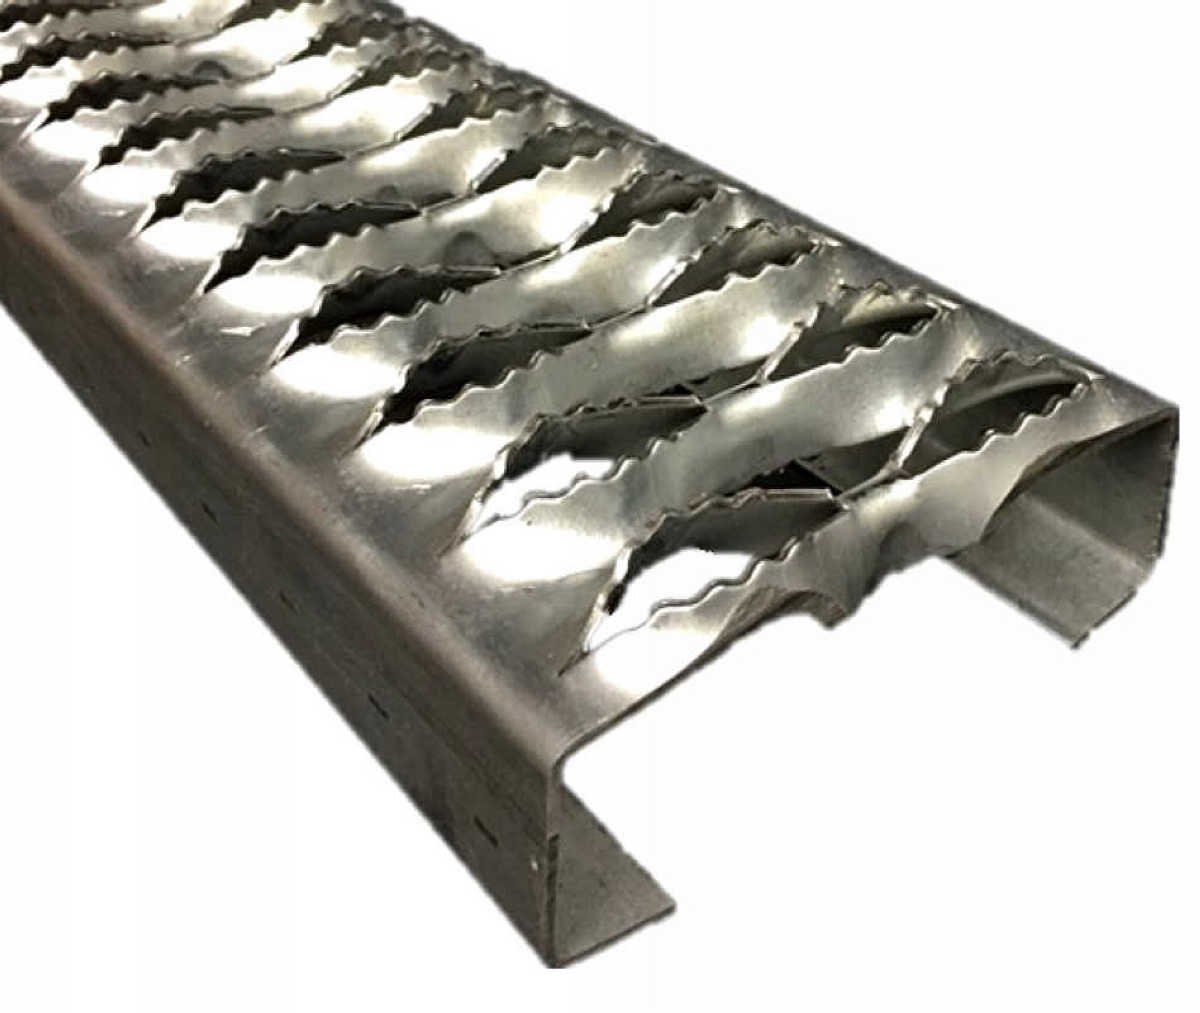 3322010-120 Grip Strut Channel Aluminum 2-Diamond Plank Safety Grating, 120'' Length x 4-3/4'' Width x 2'' Depth by Small Parts